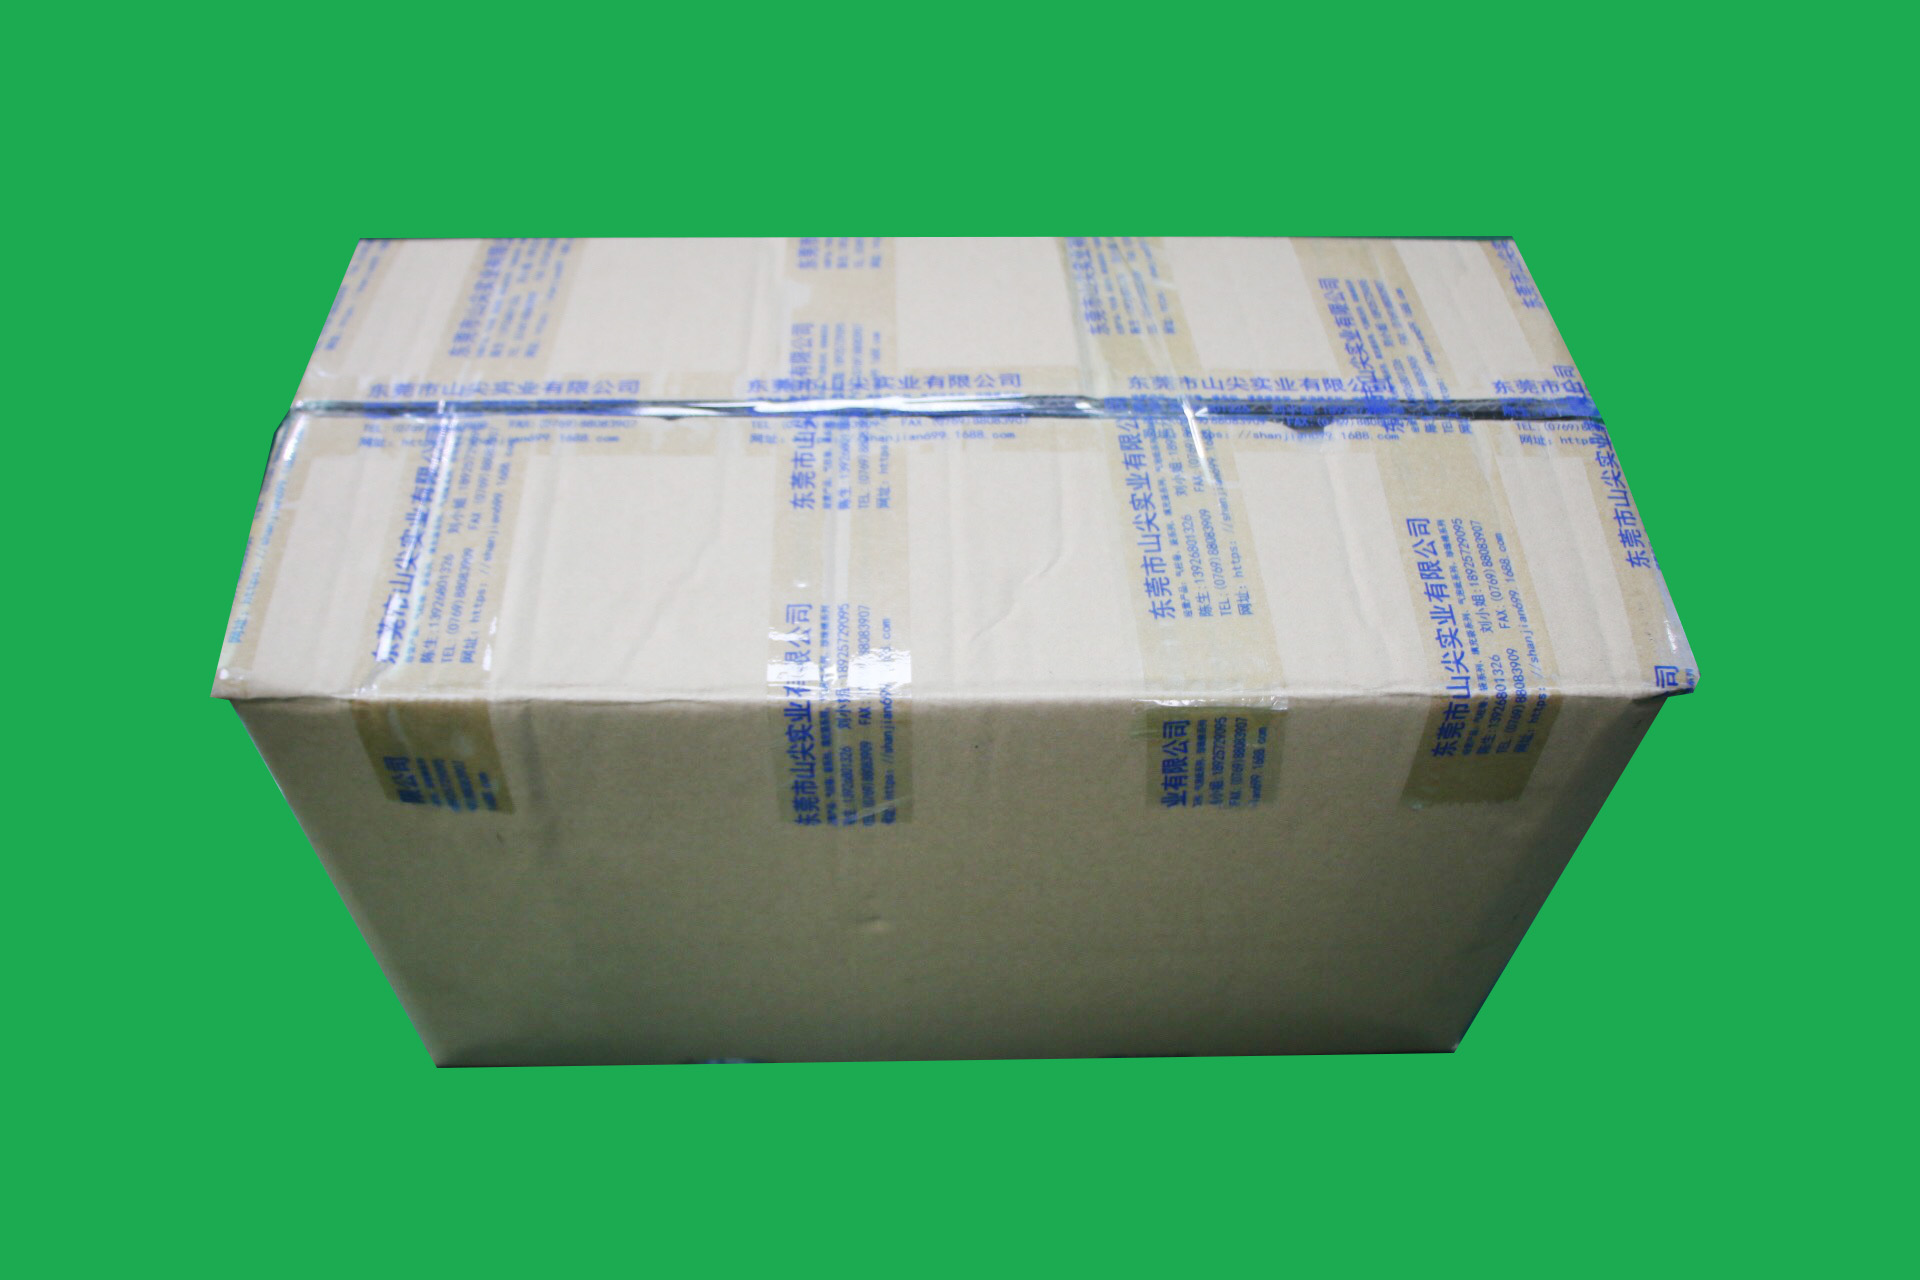 Sunshinepack ODM column air packaging Suppliers for goods-6